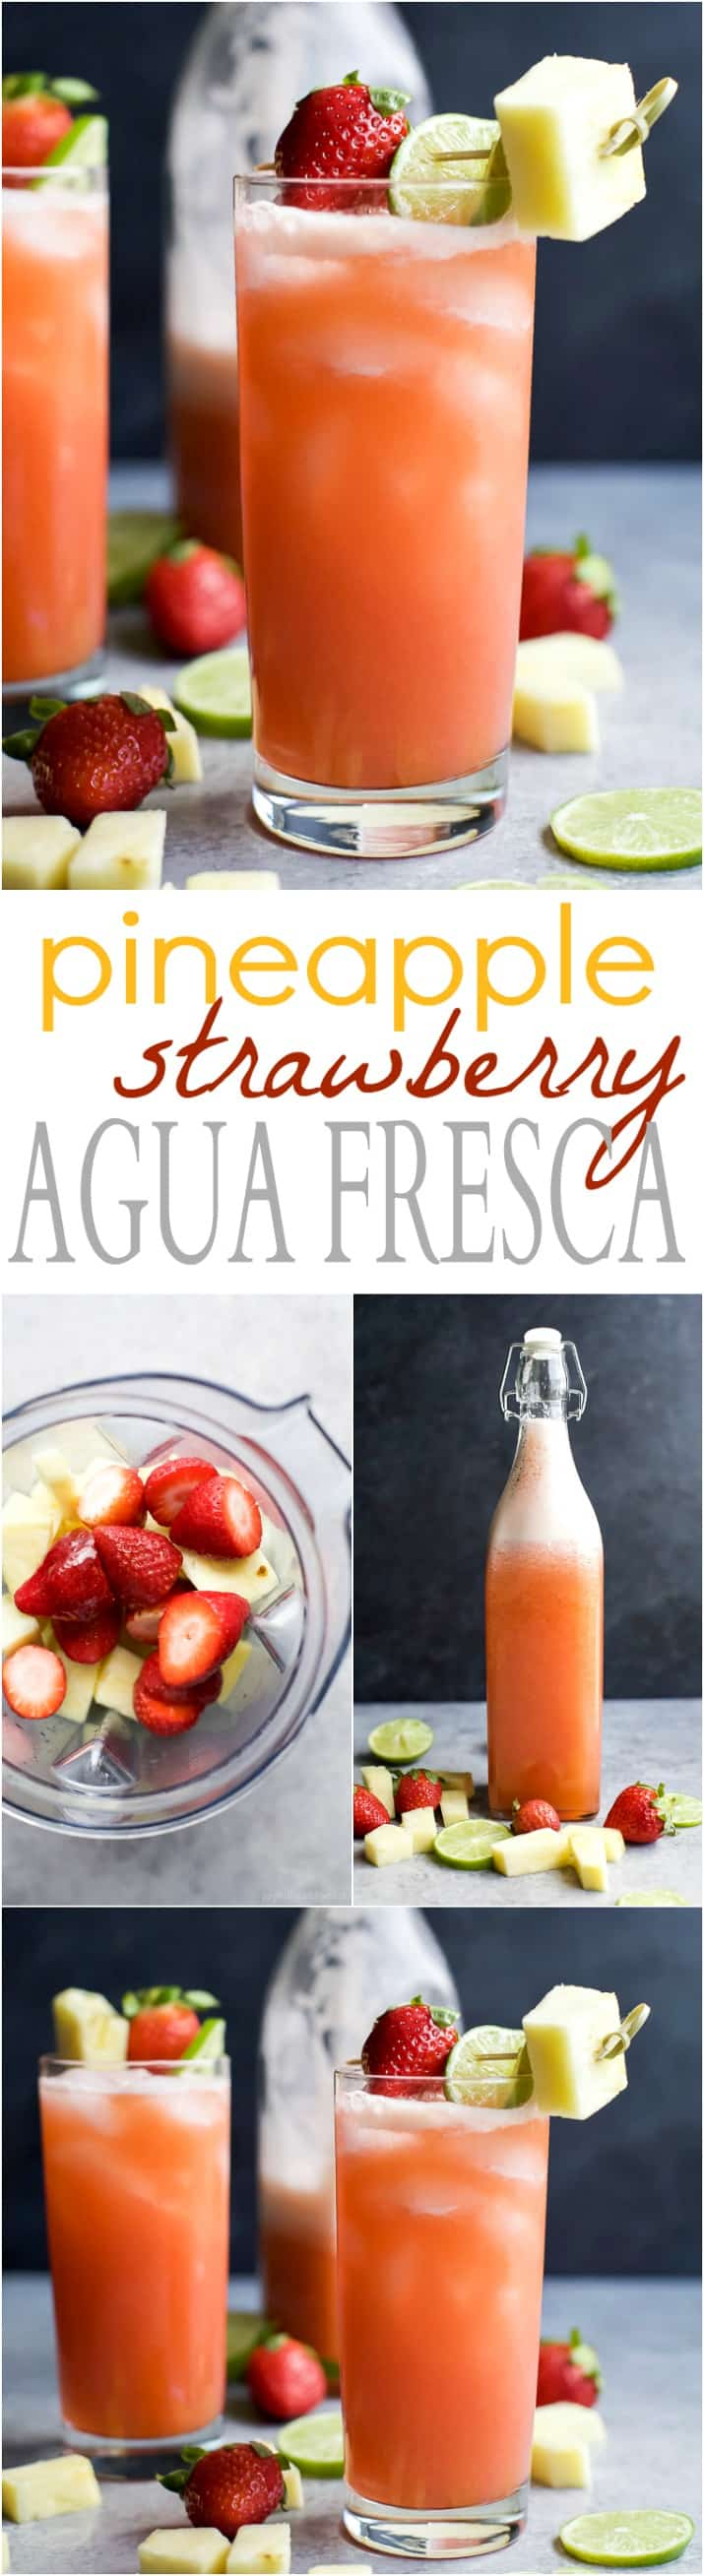 PINEAPPLE STRAWBERRY AGUA FRESCA - a light refreshing drink to keep you cool all summer long! This Agua Fresca takes less than 10 minutes to make and is sweetened with agave nectar. | joyfulhealthyeats.com